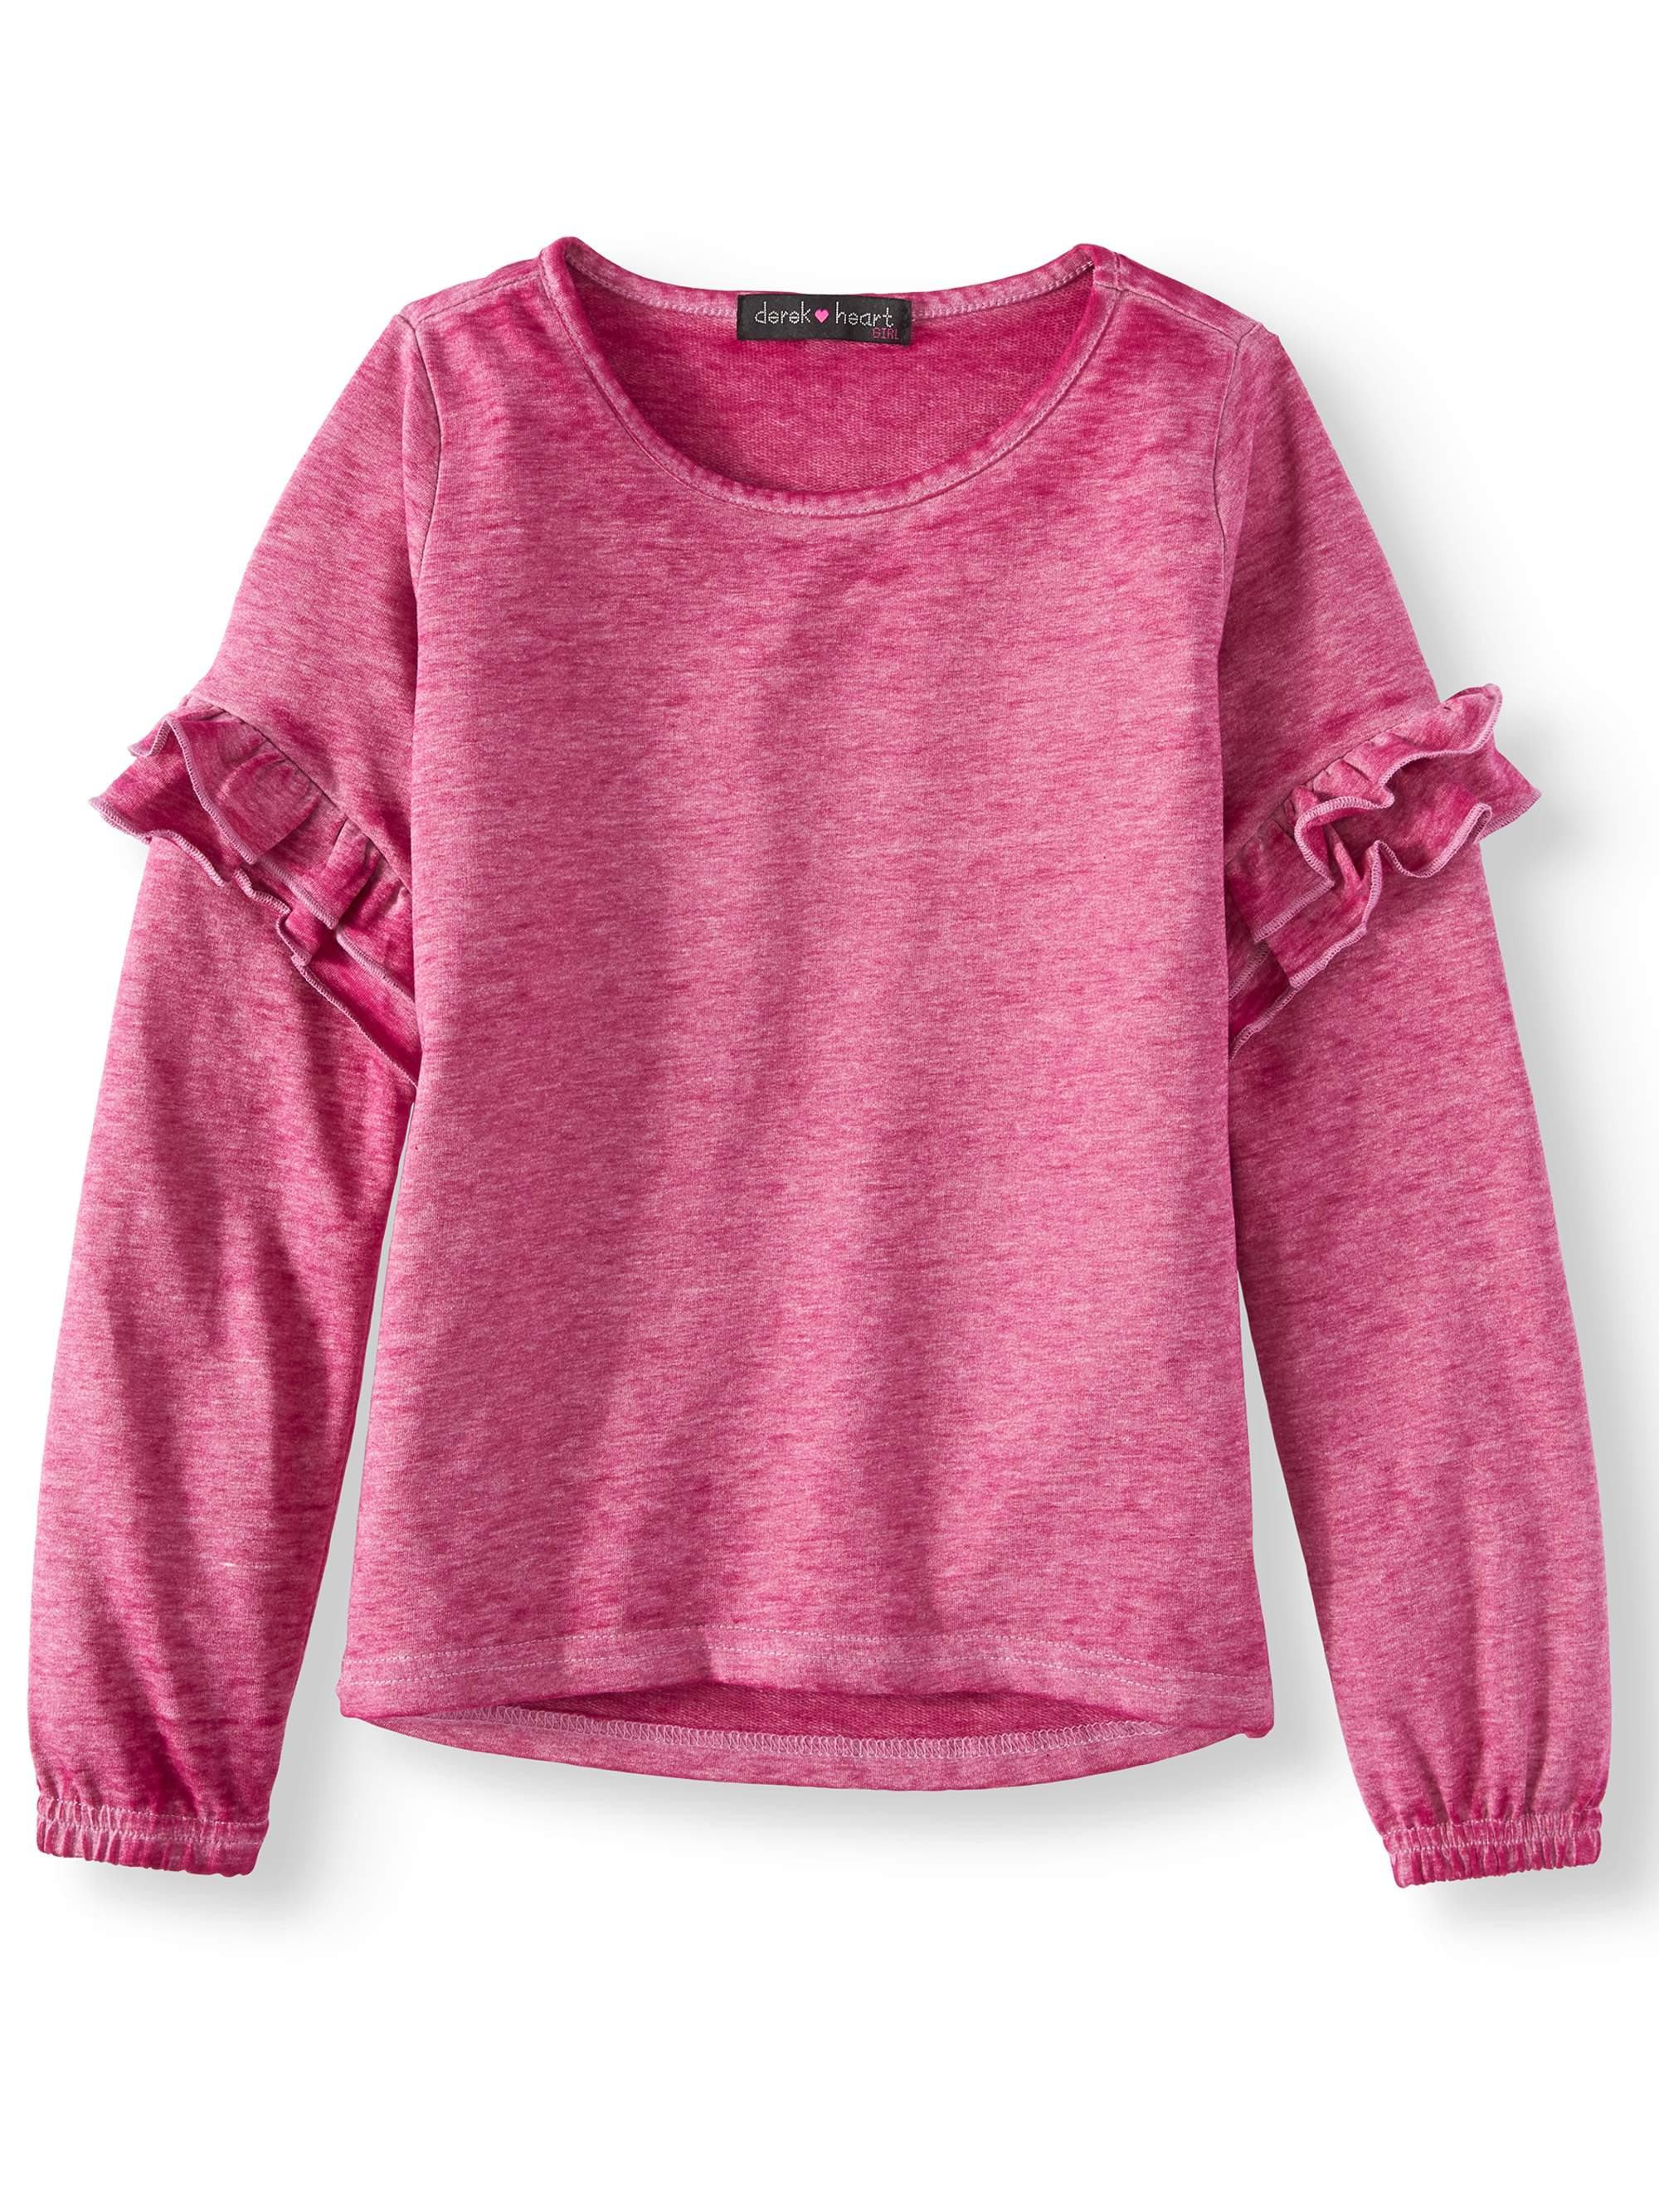 Burnout French Terry Ruffle Sleeve Top (Big Girls)